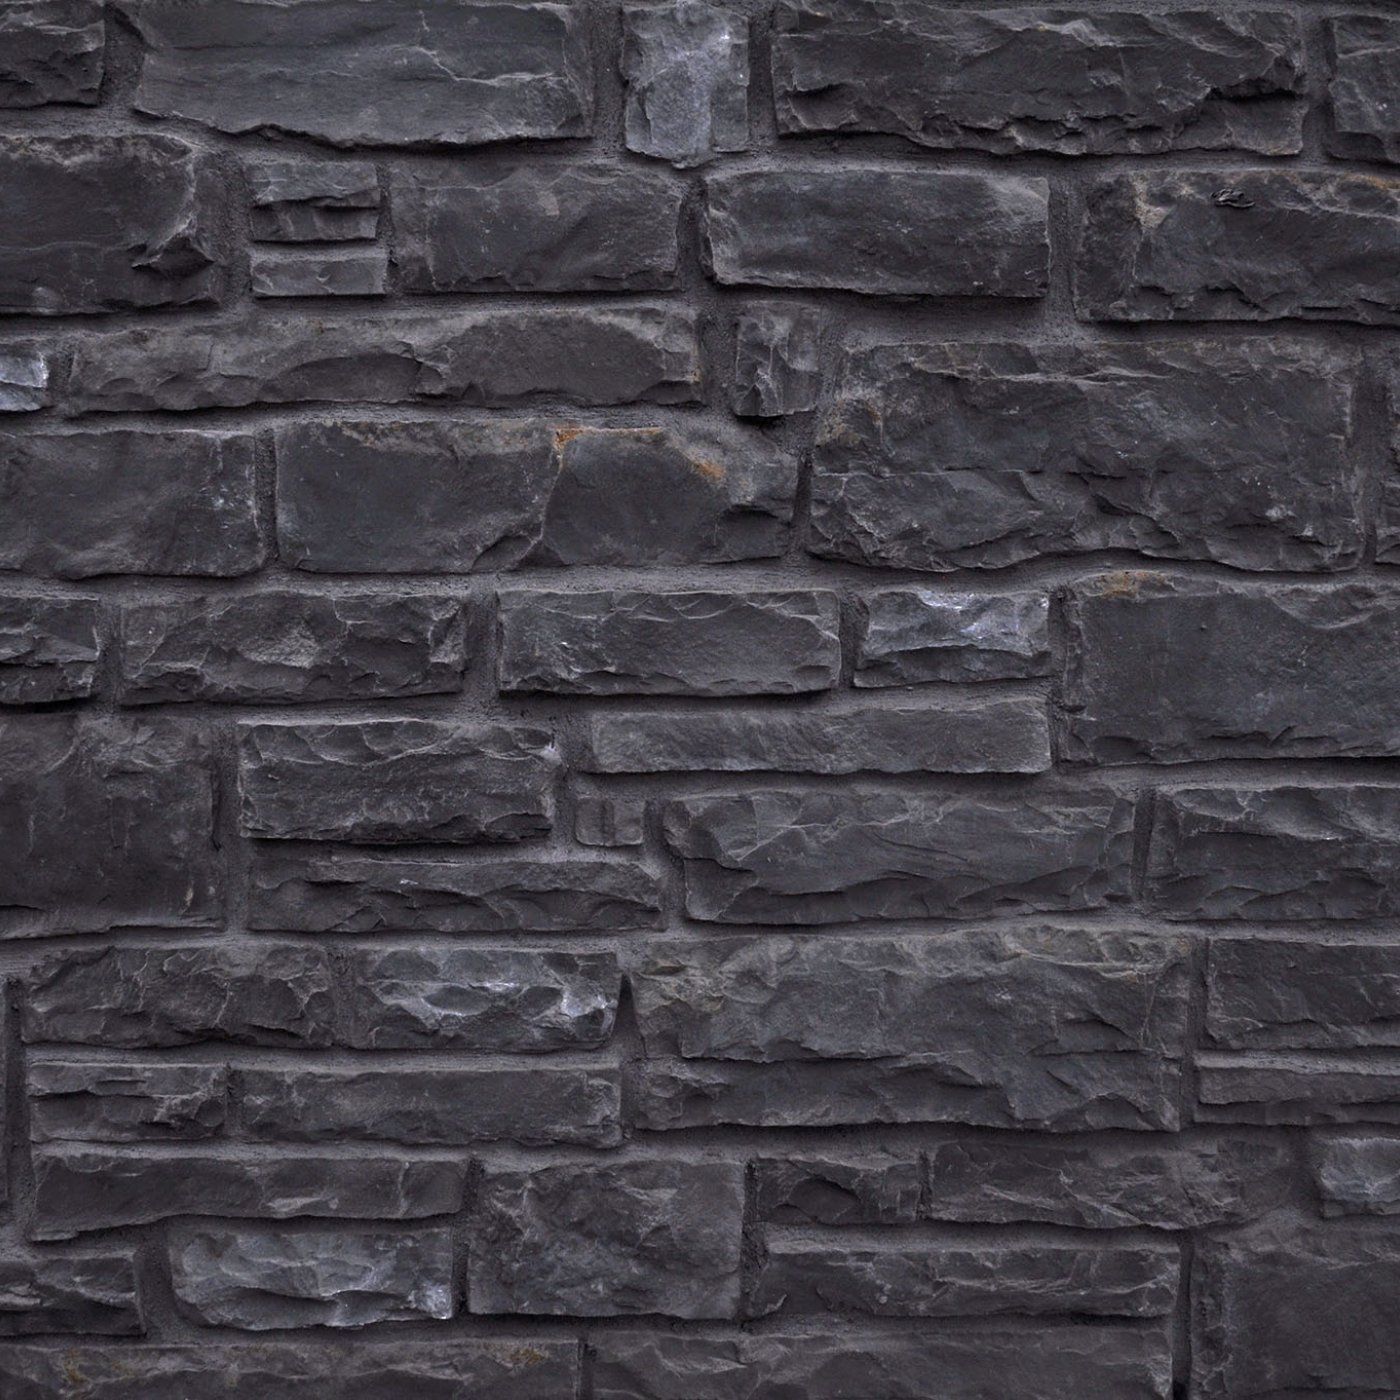 Black Rundle Country Squire Cut Stone MW Stone Veneer from Environmental StoneWorks